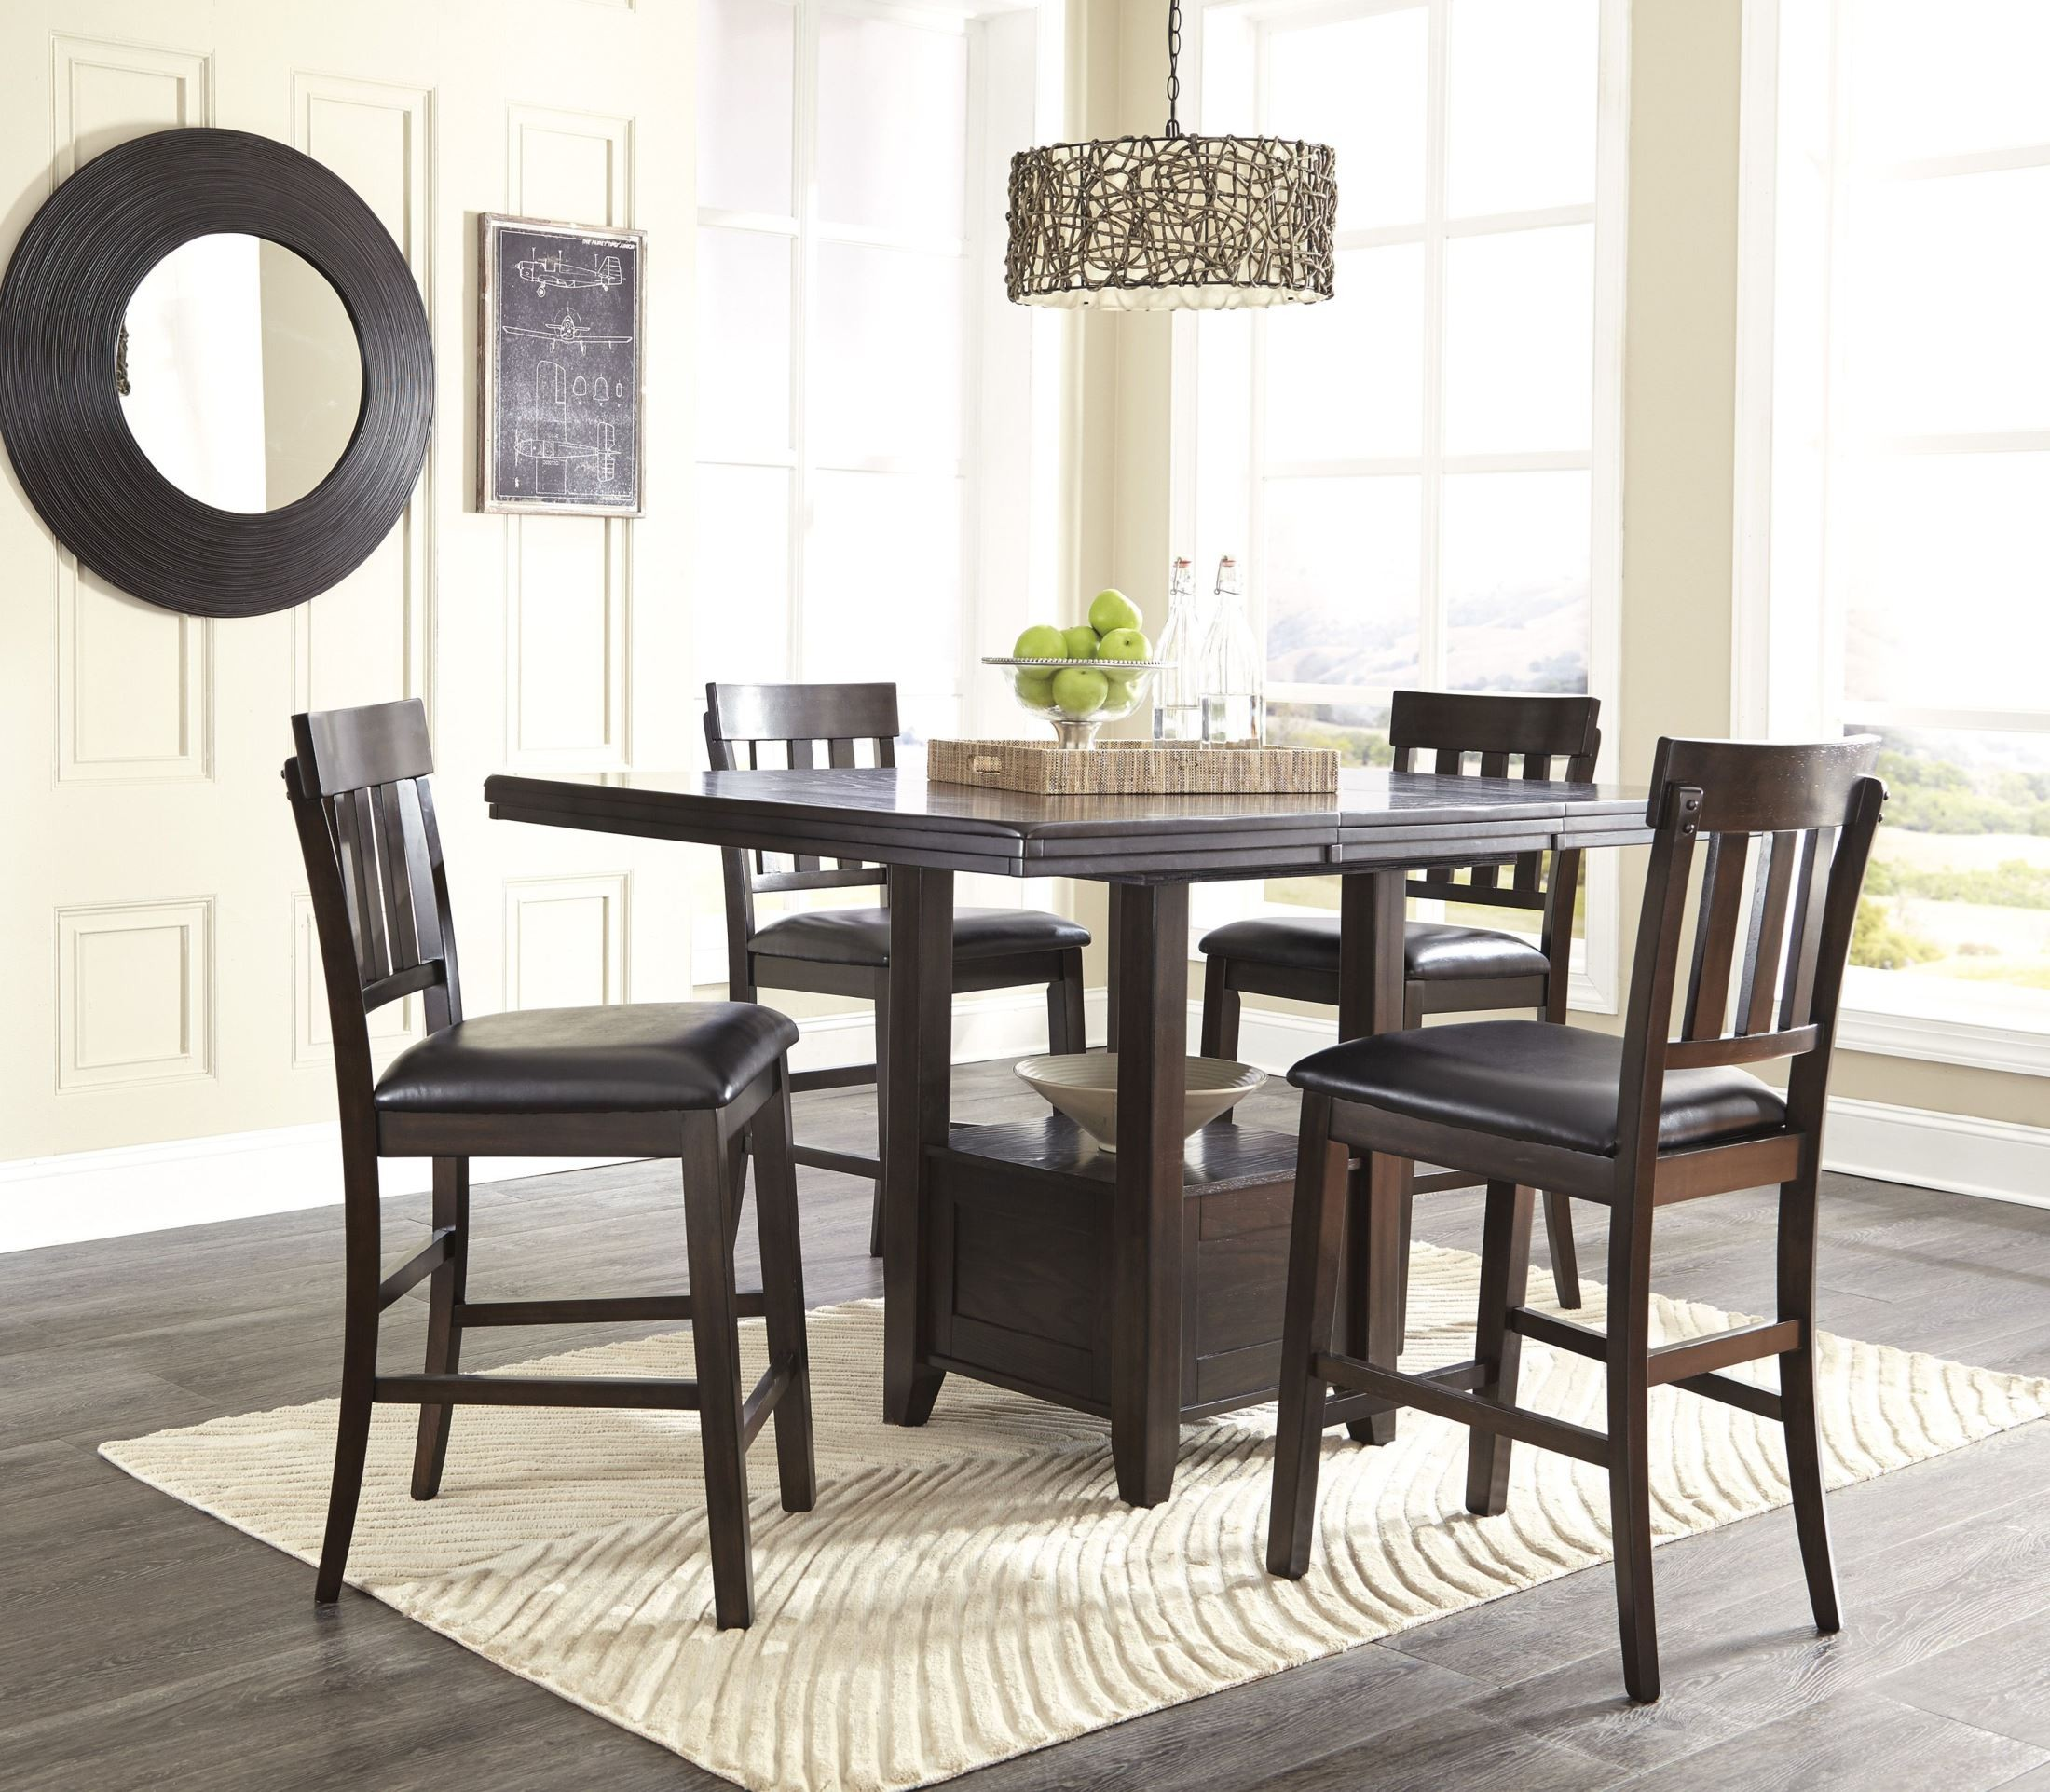 ... Counter Height Dining Table · 899672. 899675. 899673. 899674 & Haddigan Dark Brown Rectangular Extendable Counter Height Dining ...